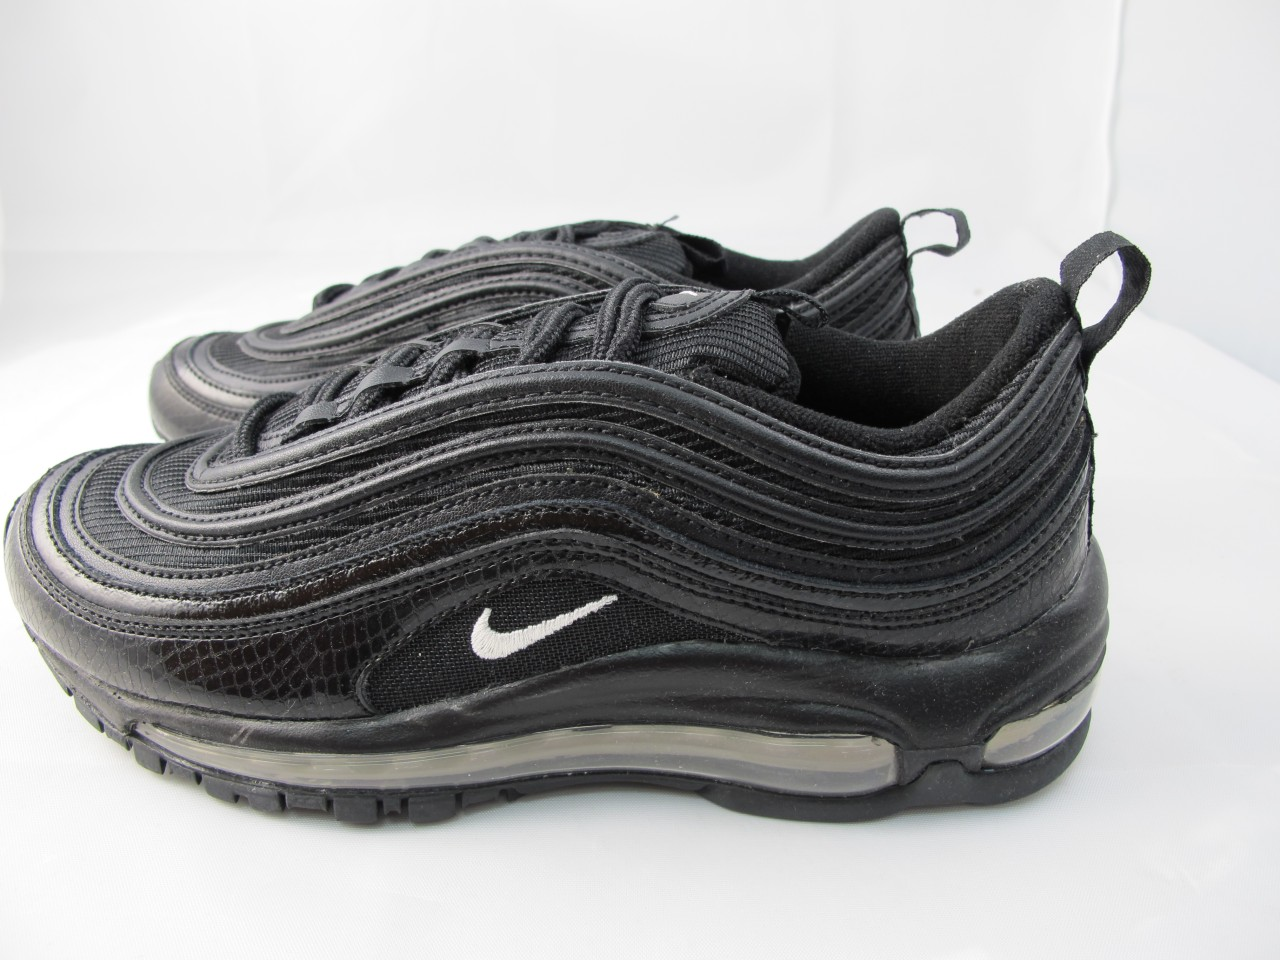 Nike air max 97 deals on 1001 Blocks